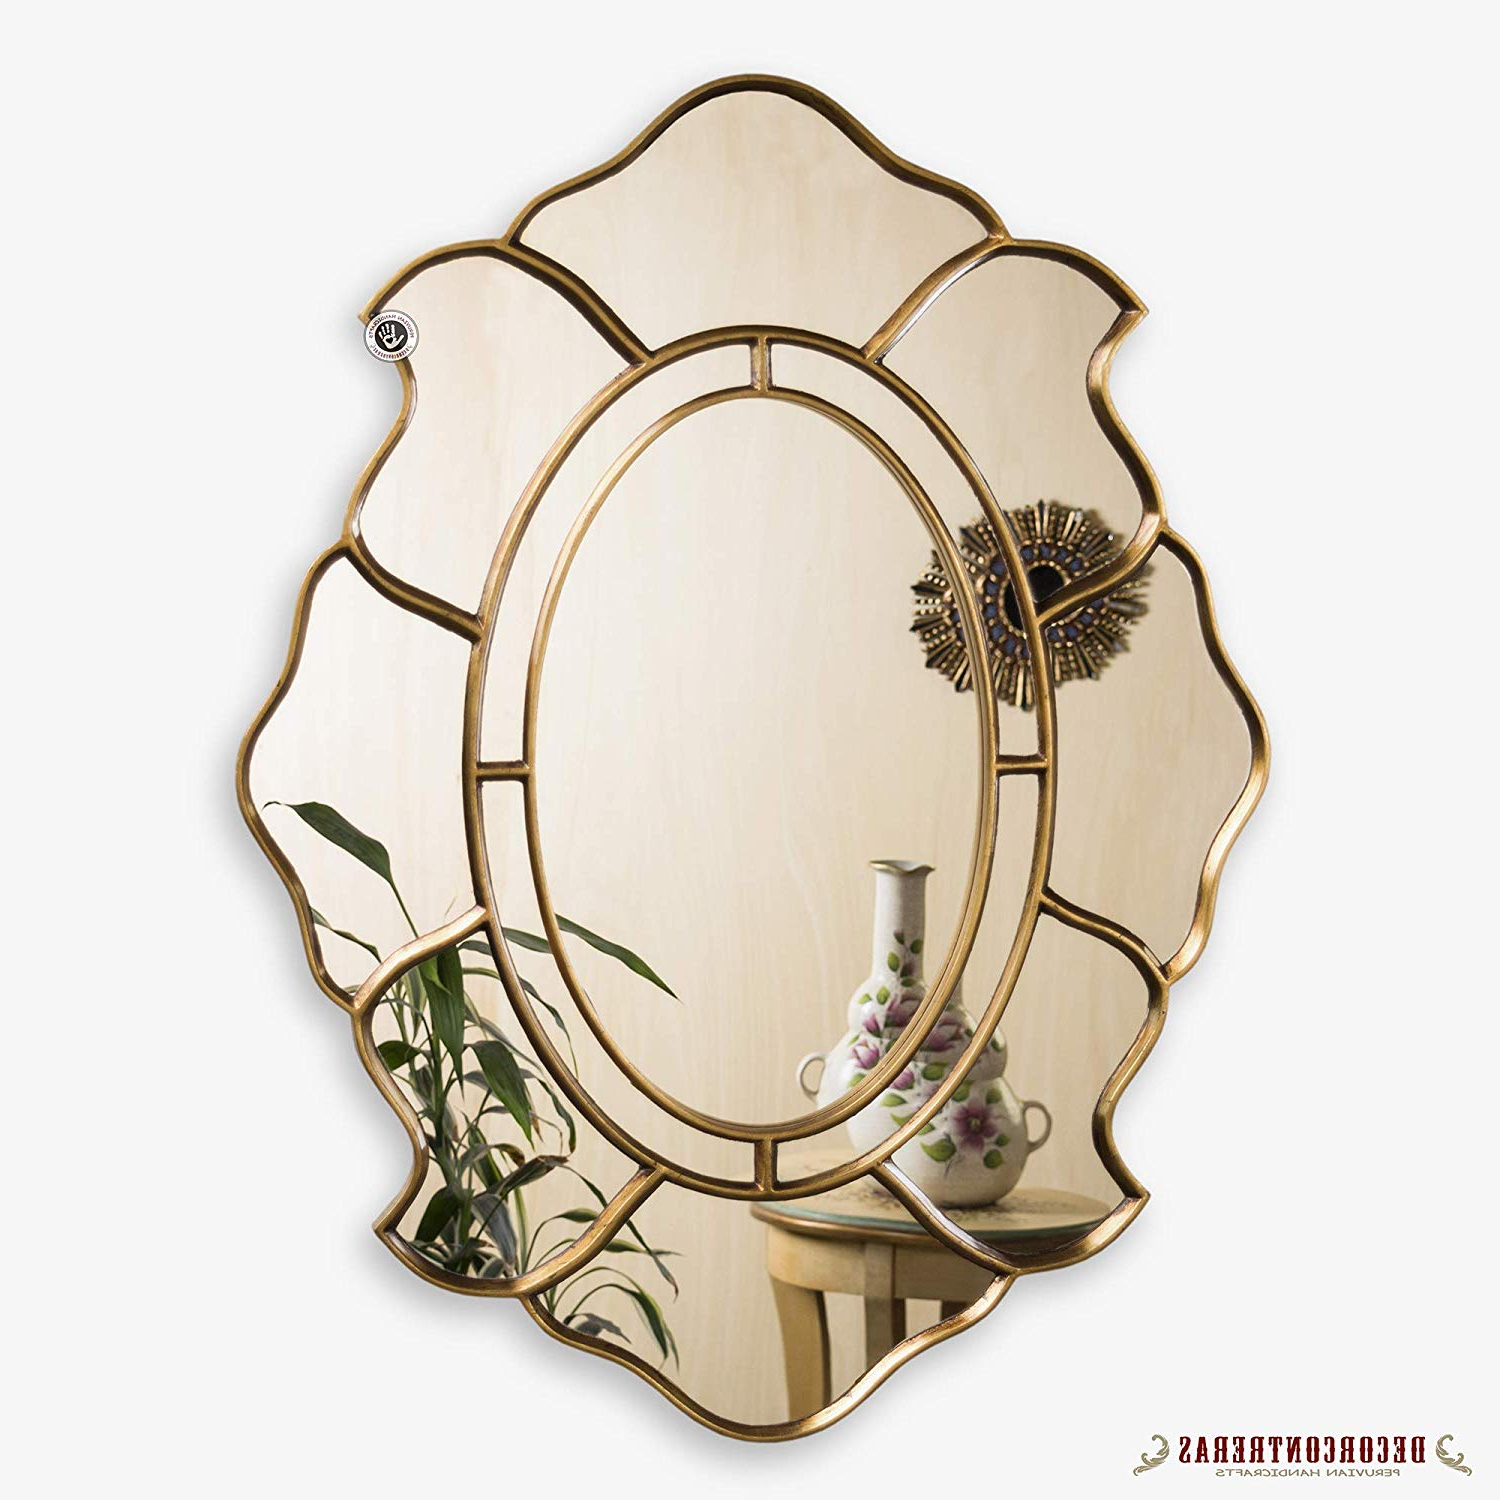 Newest Accent Mirrors Within Amazon: Gold Oval Accent Wall Mirror, Decorative Oval Mirror For (View 10 of 20)